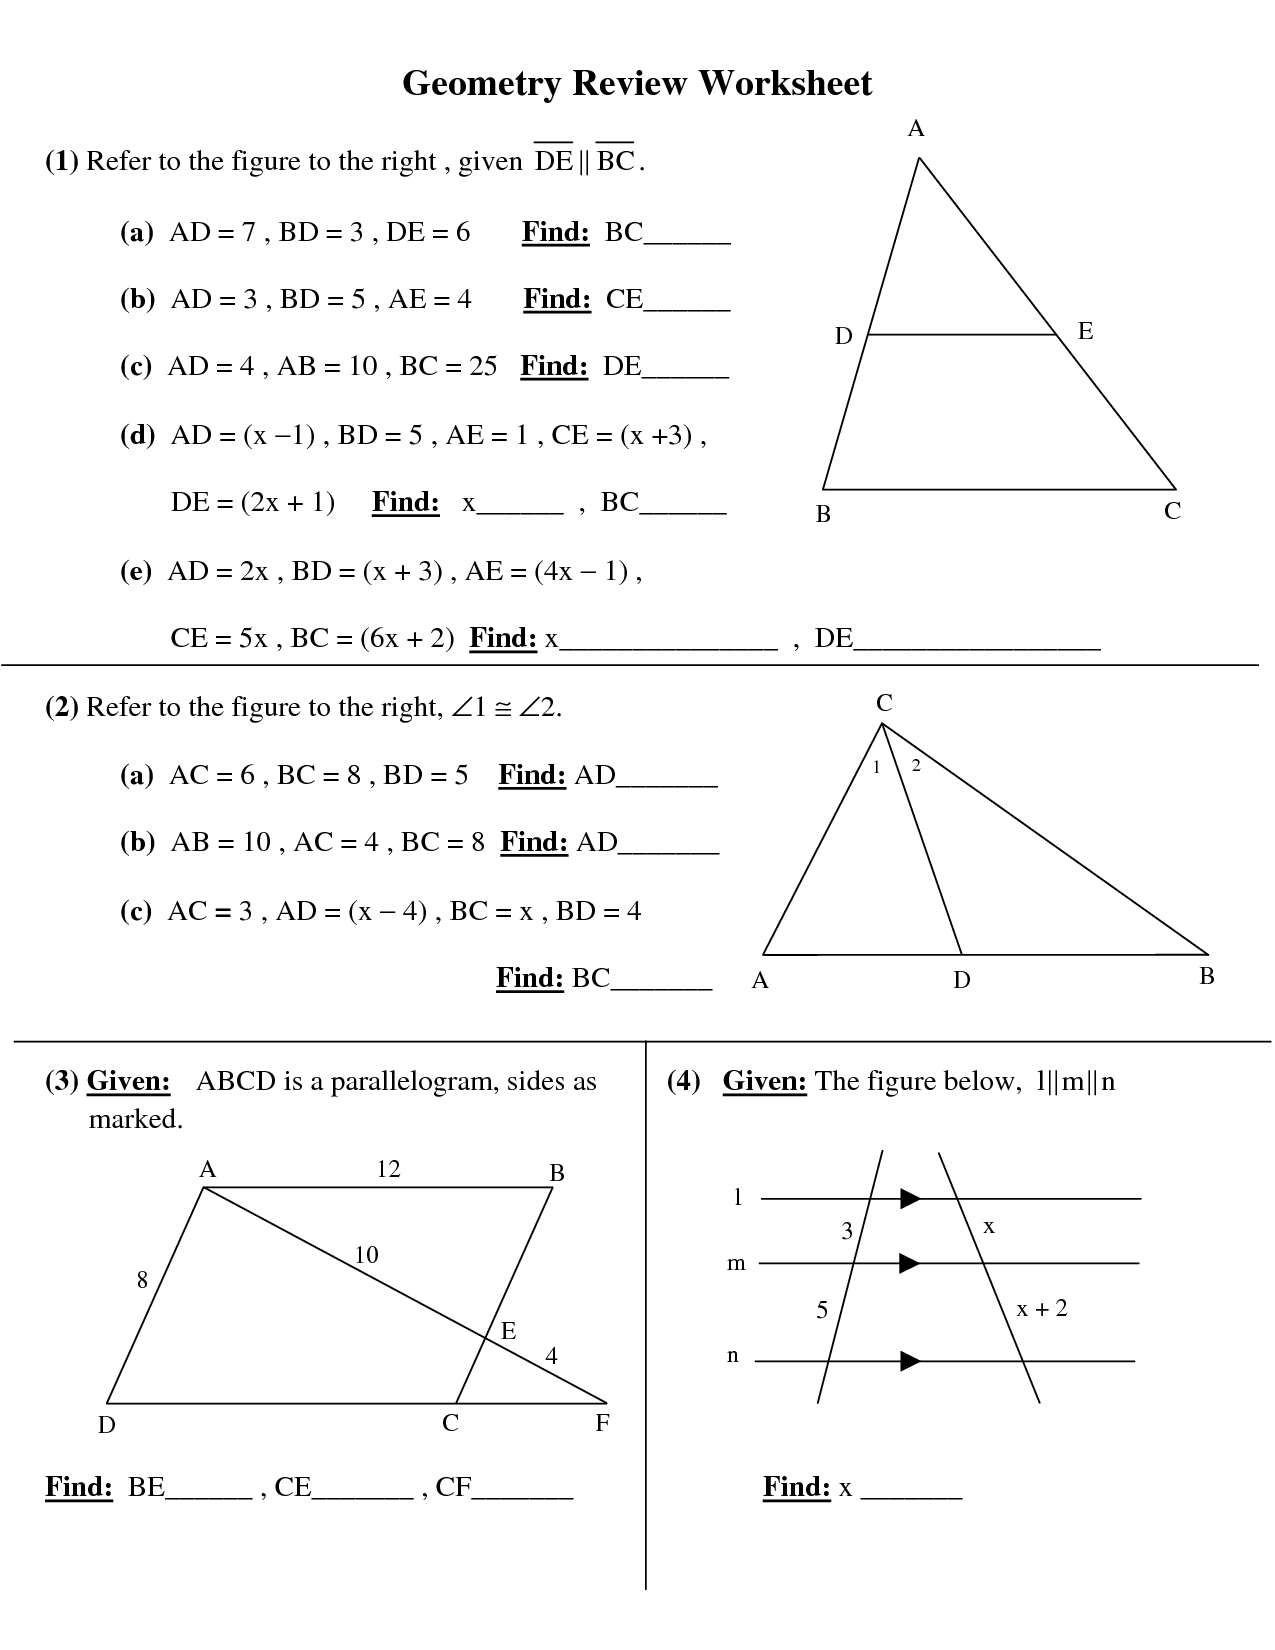 Free High School Geometry Worksheets – Free Printable High School Math Worksheets